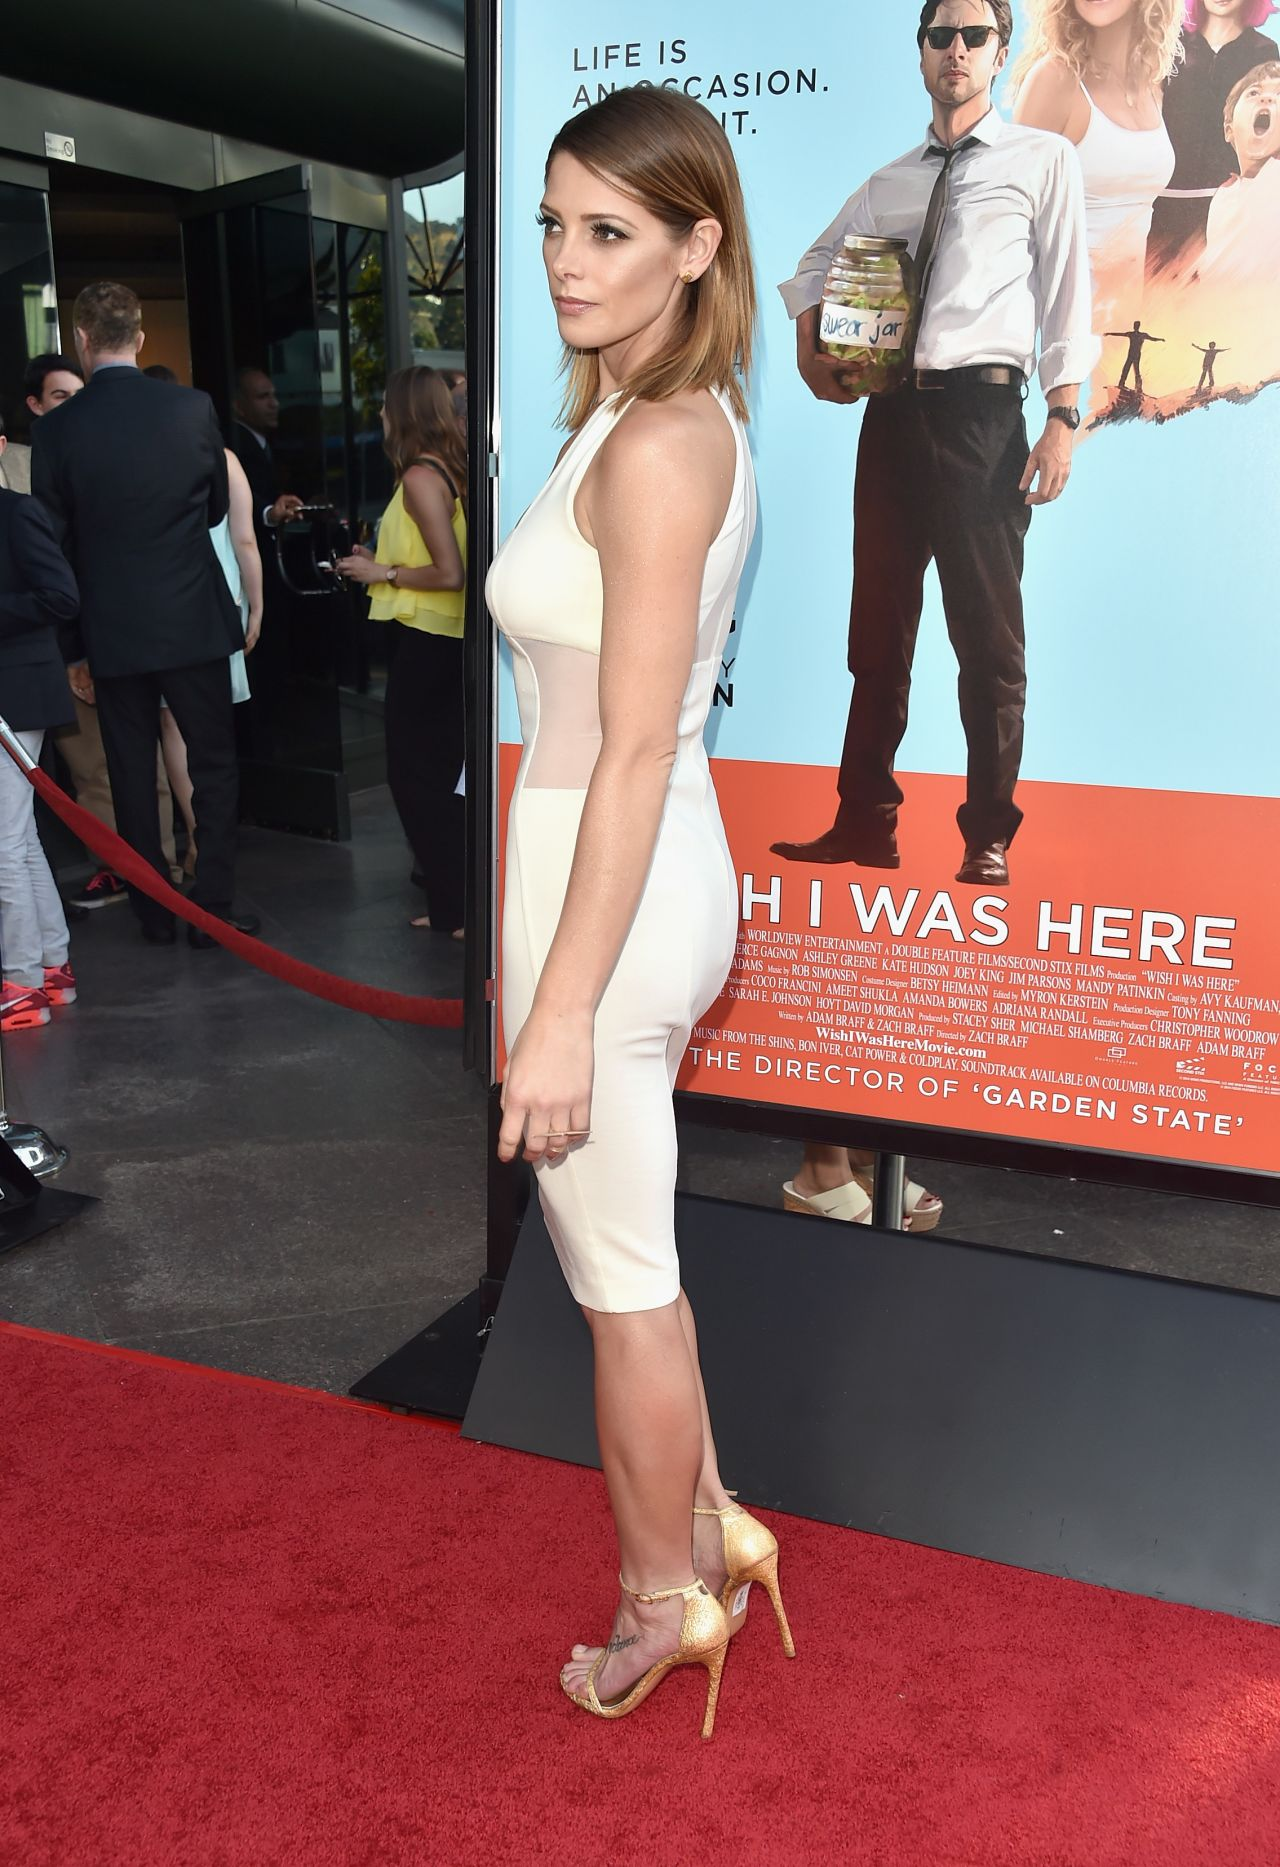 Ashley Greene at Premiere for Wish I Was Here